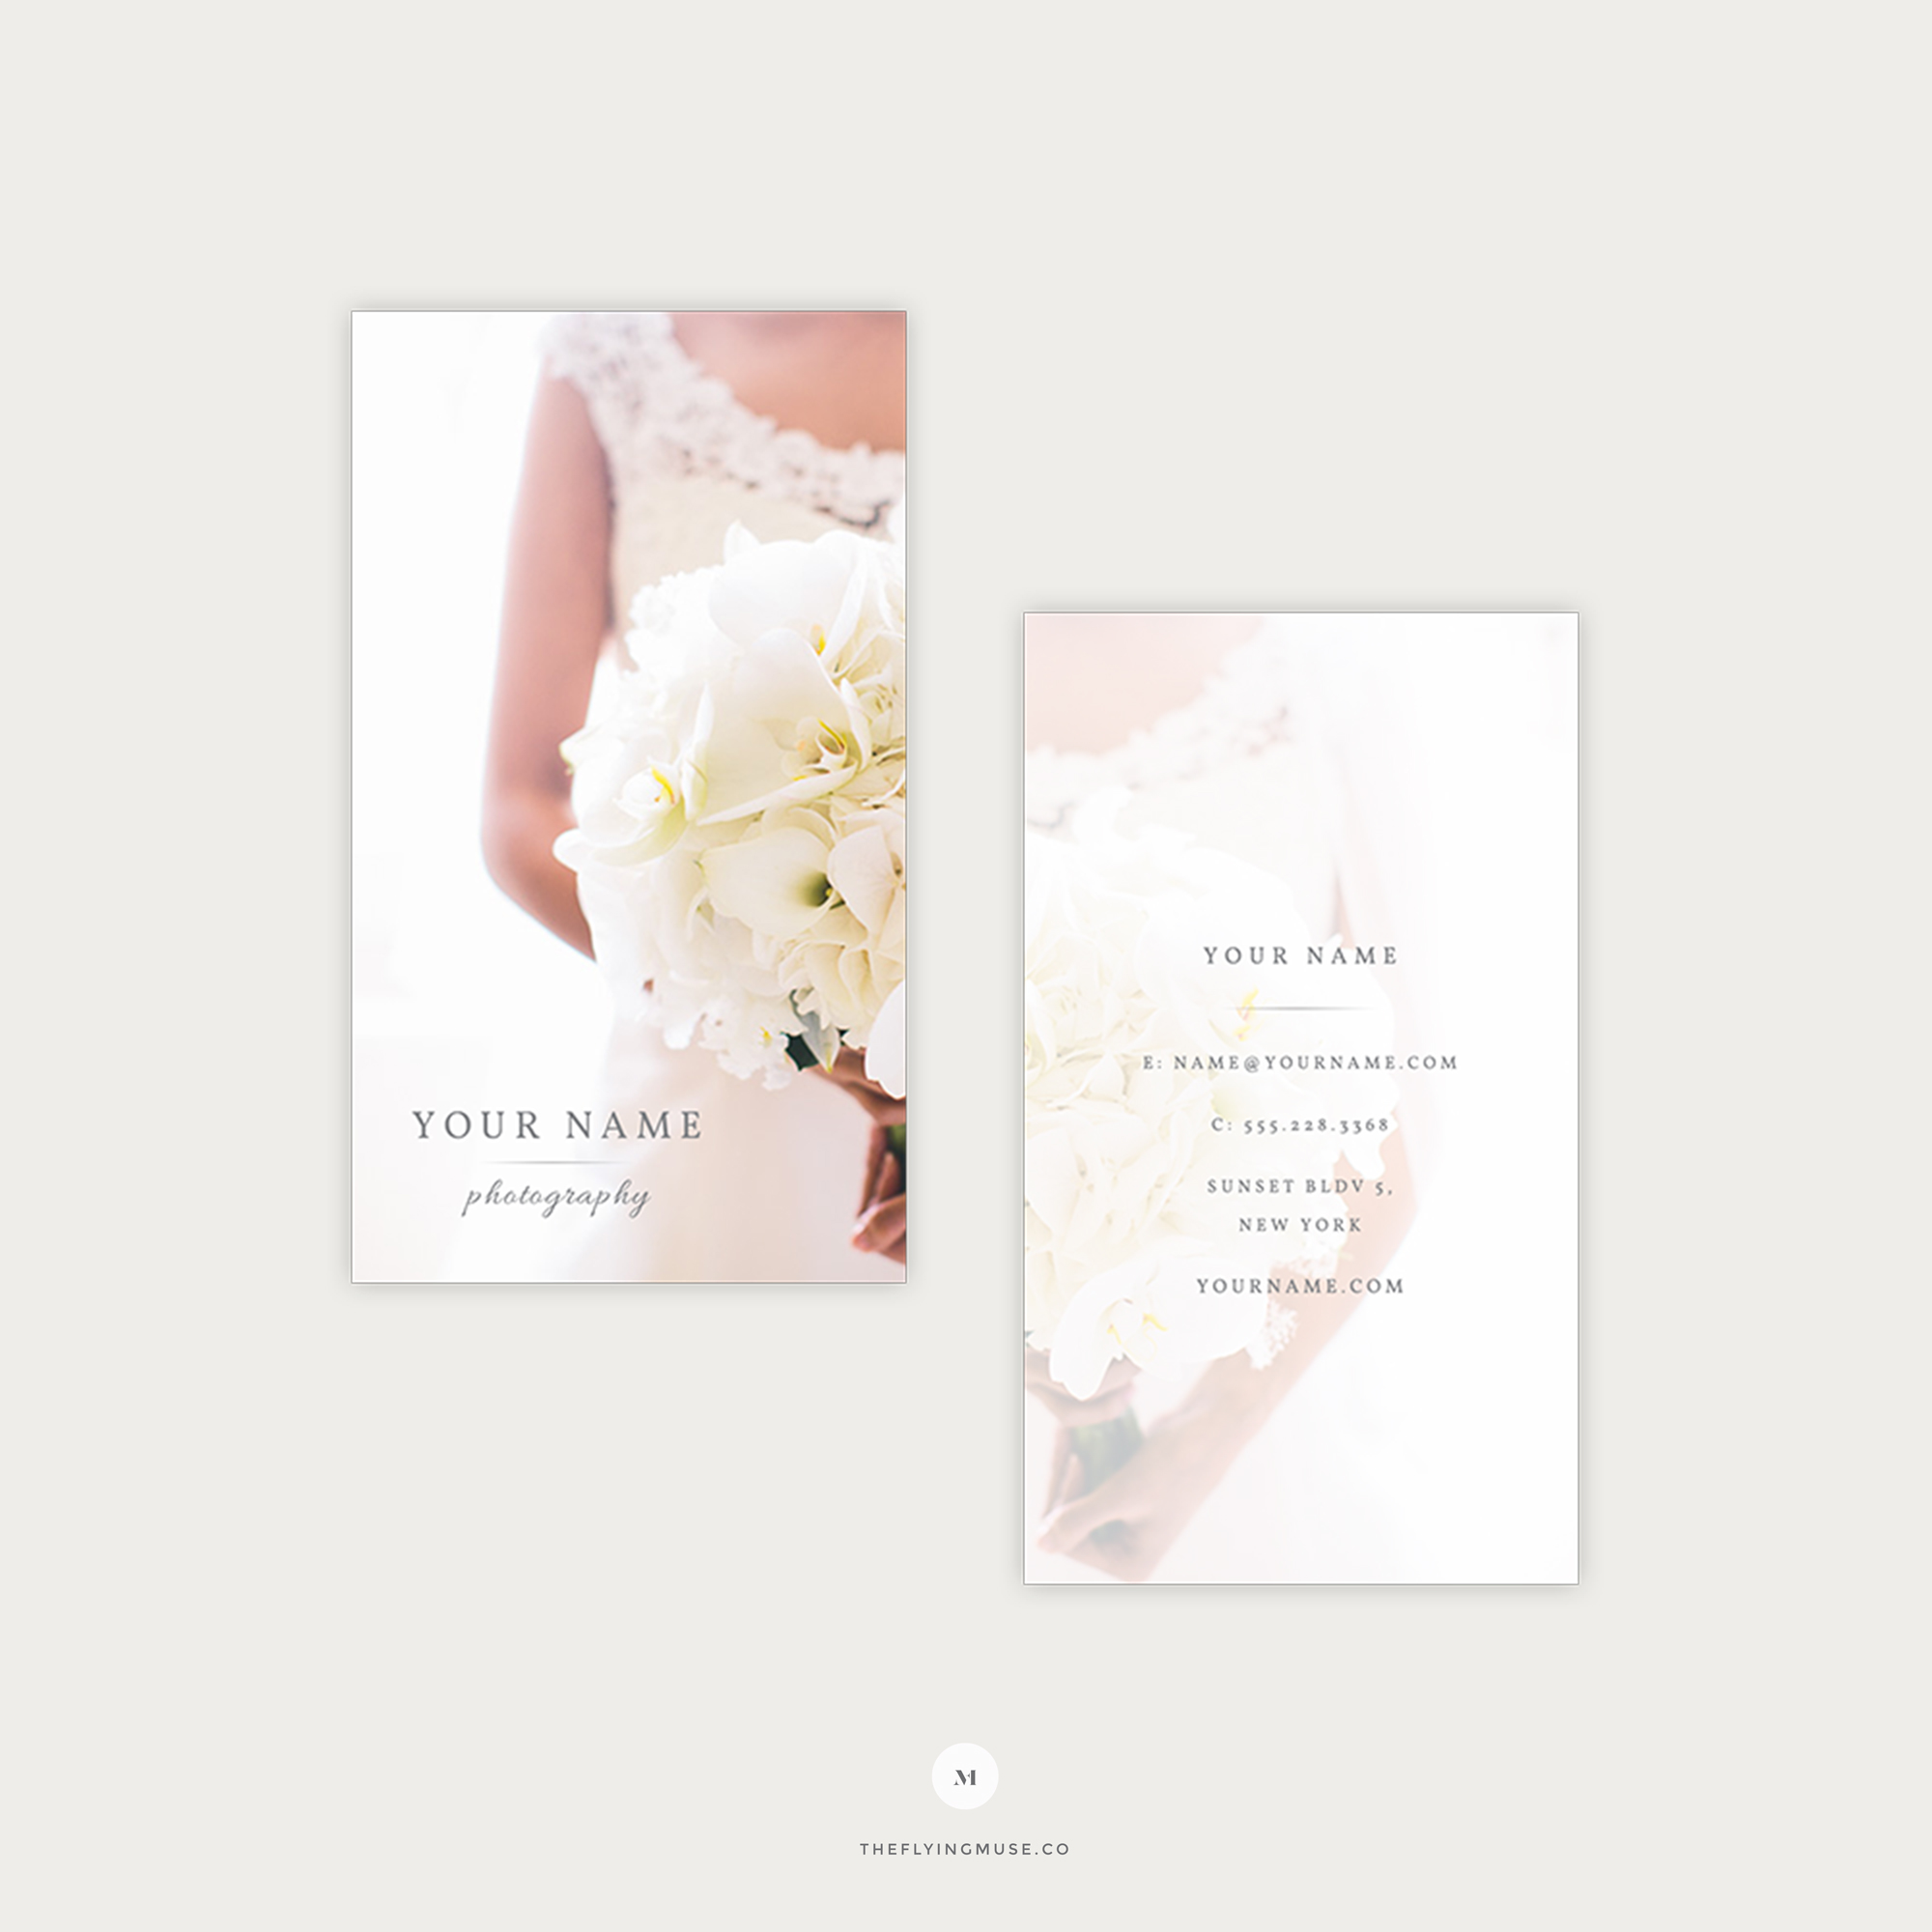 Elegant vertical wedding photography business cards the flying muse elegant vertical wedding photography business cards magicingreecefo Gallery